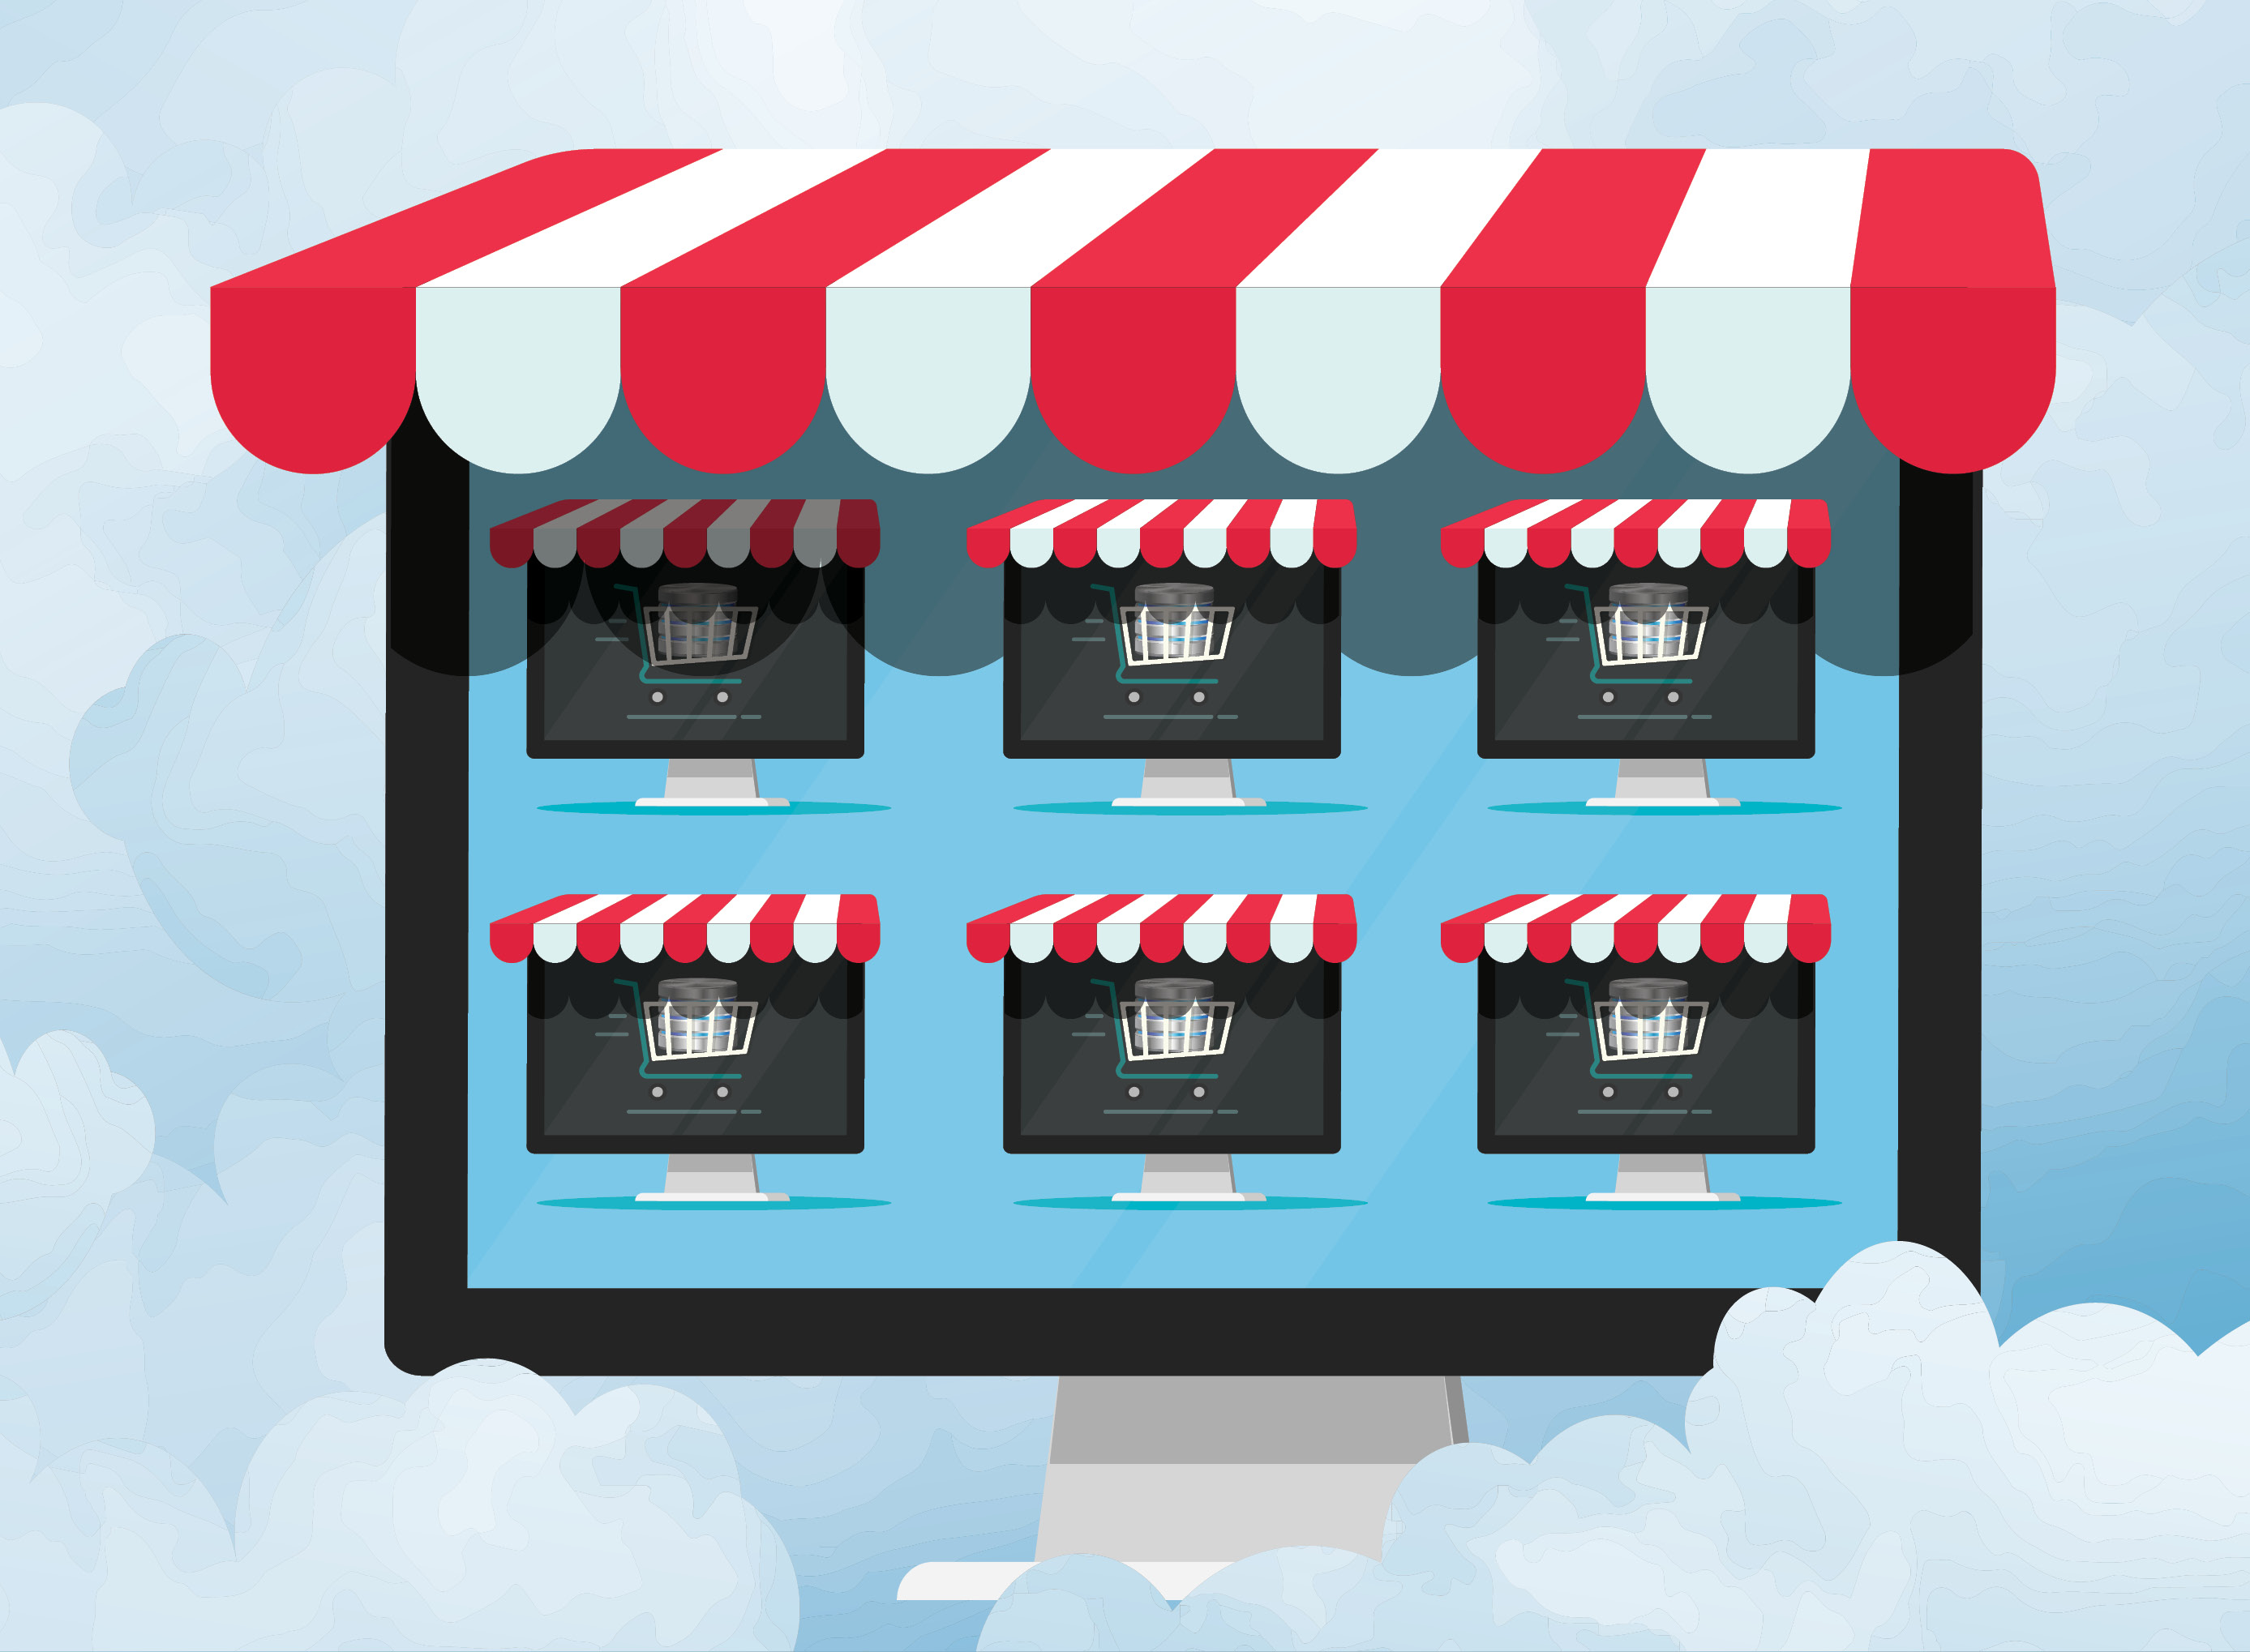 Marketplaces in the cloud: It's about much more than data